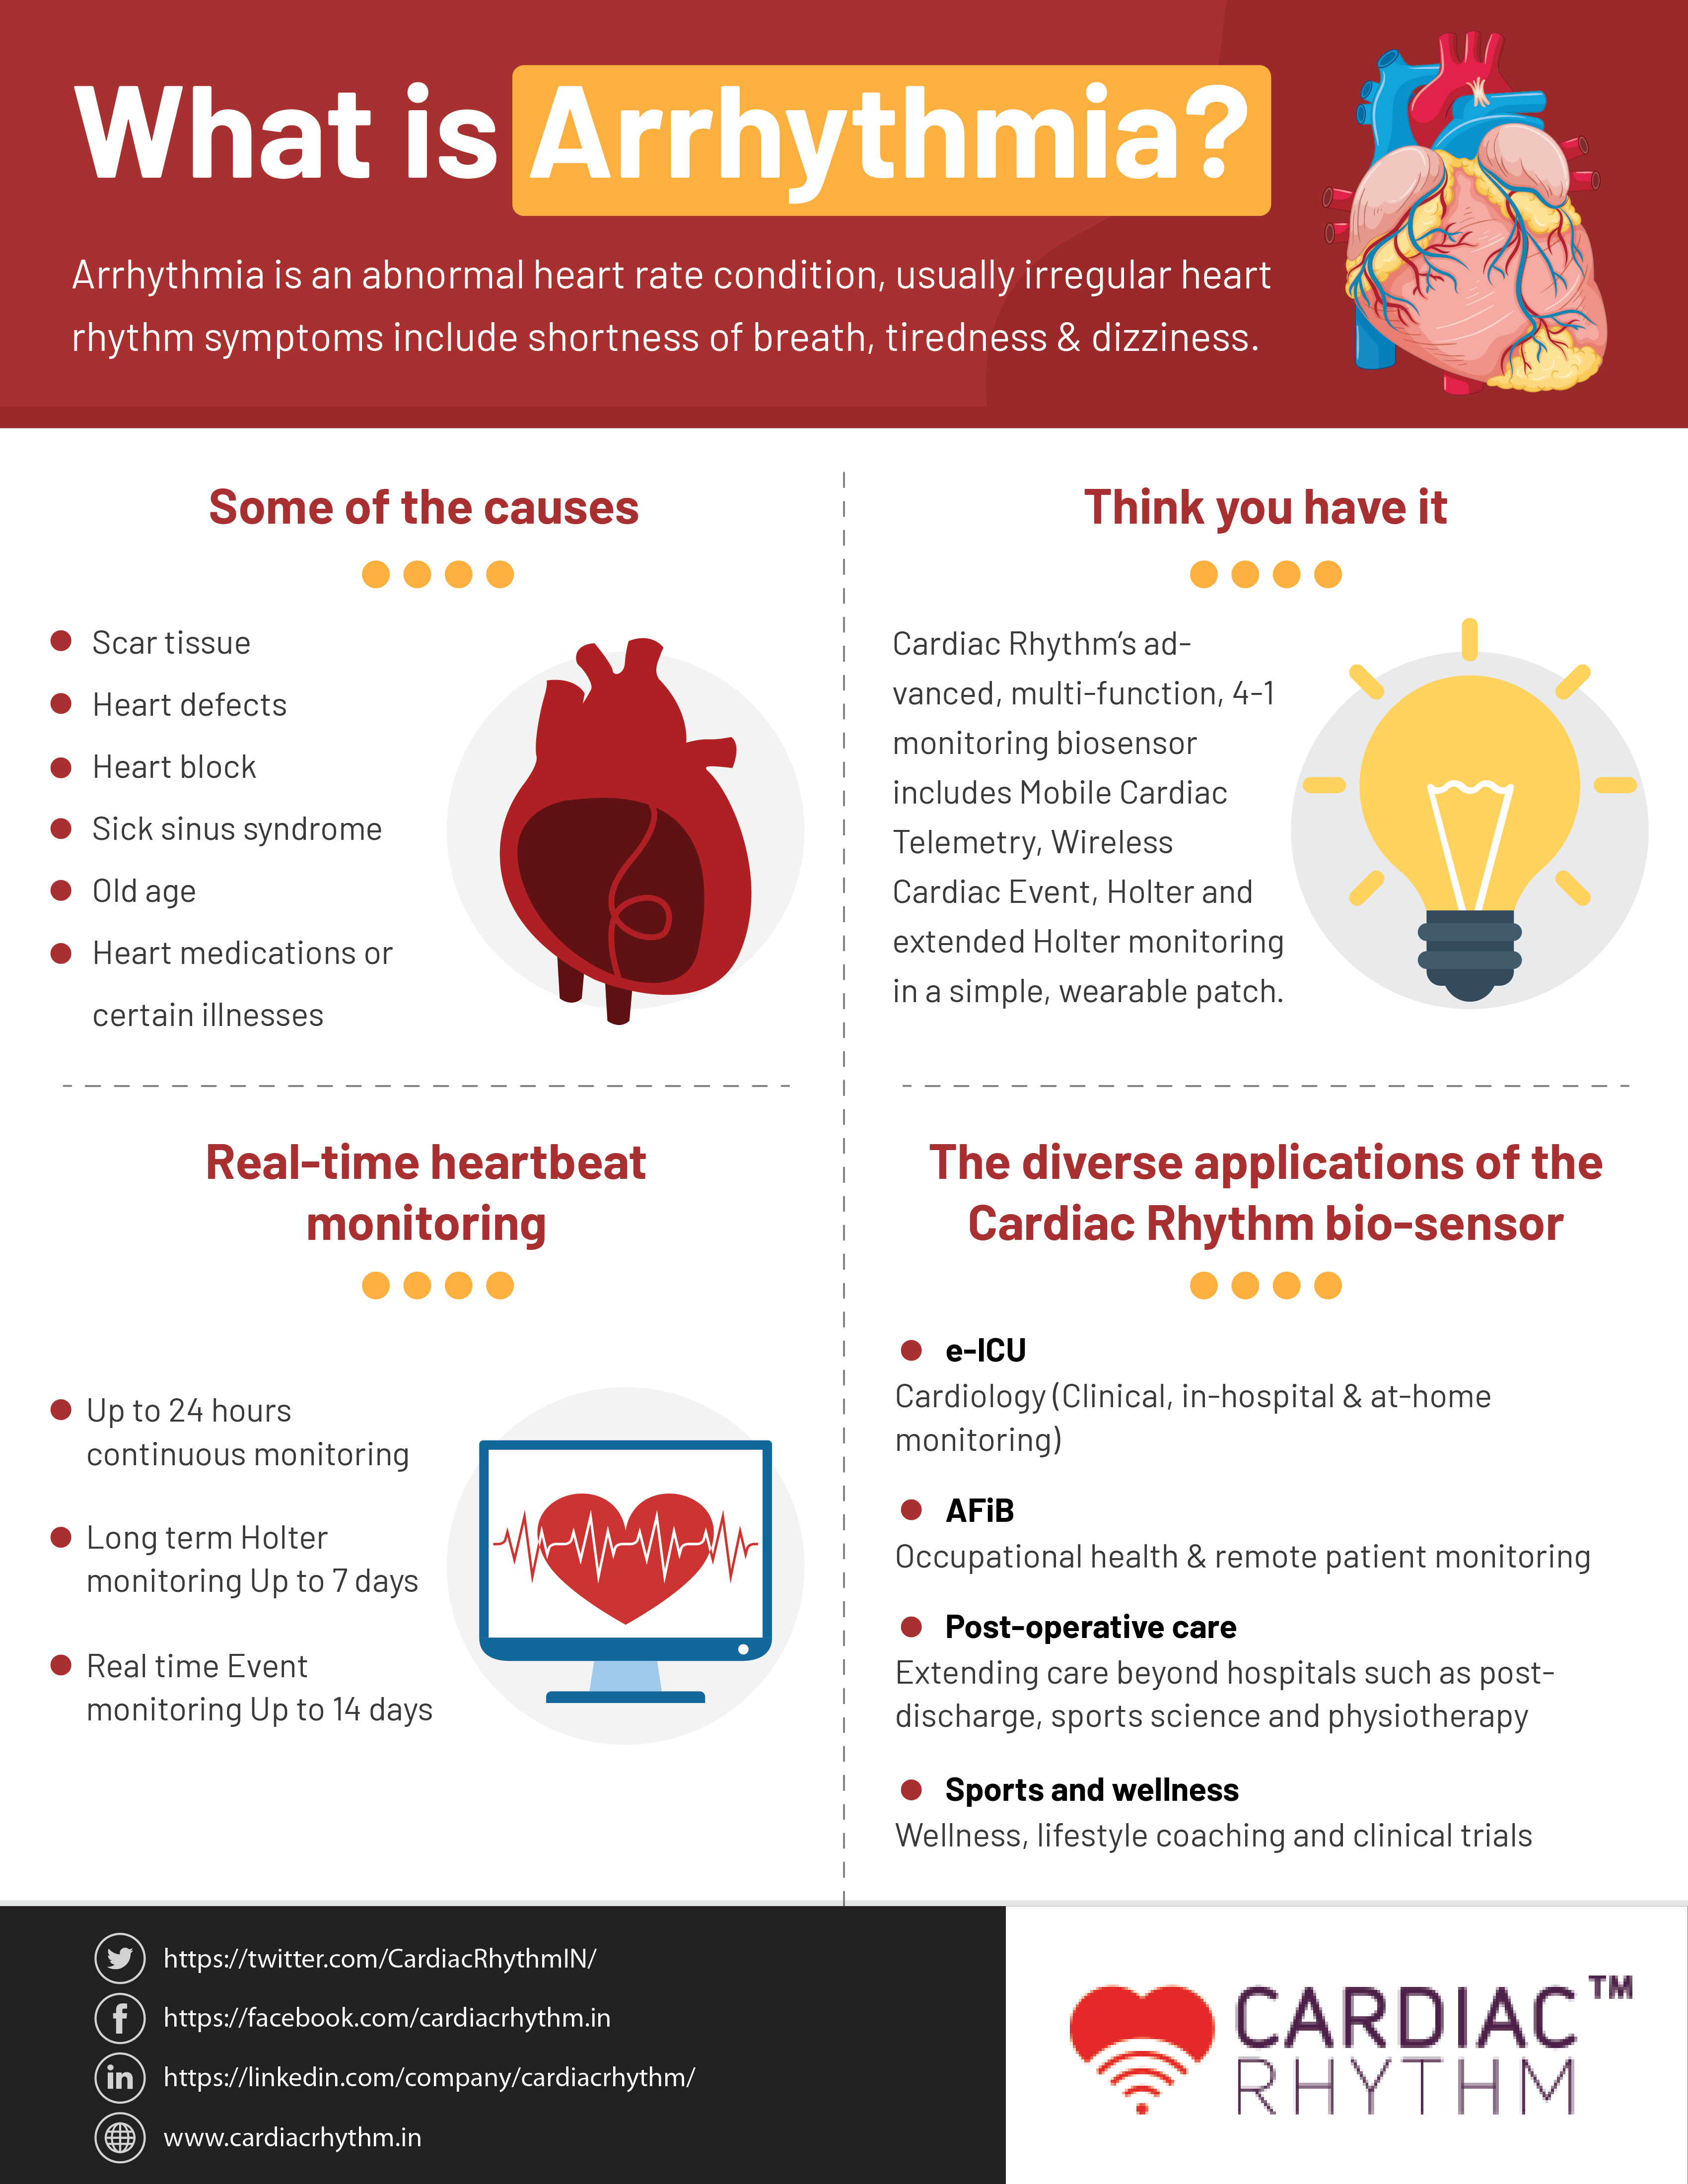 Everything You Want to Know About Arrhythmia: A Quick Guide - Infographic